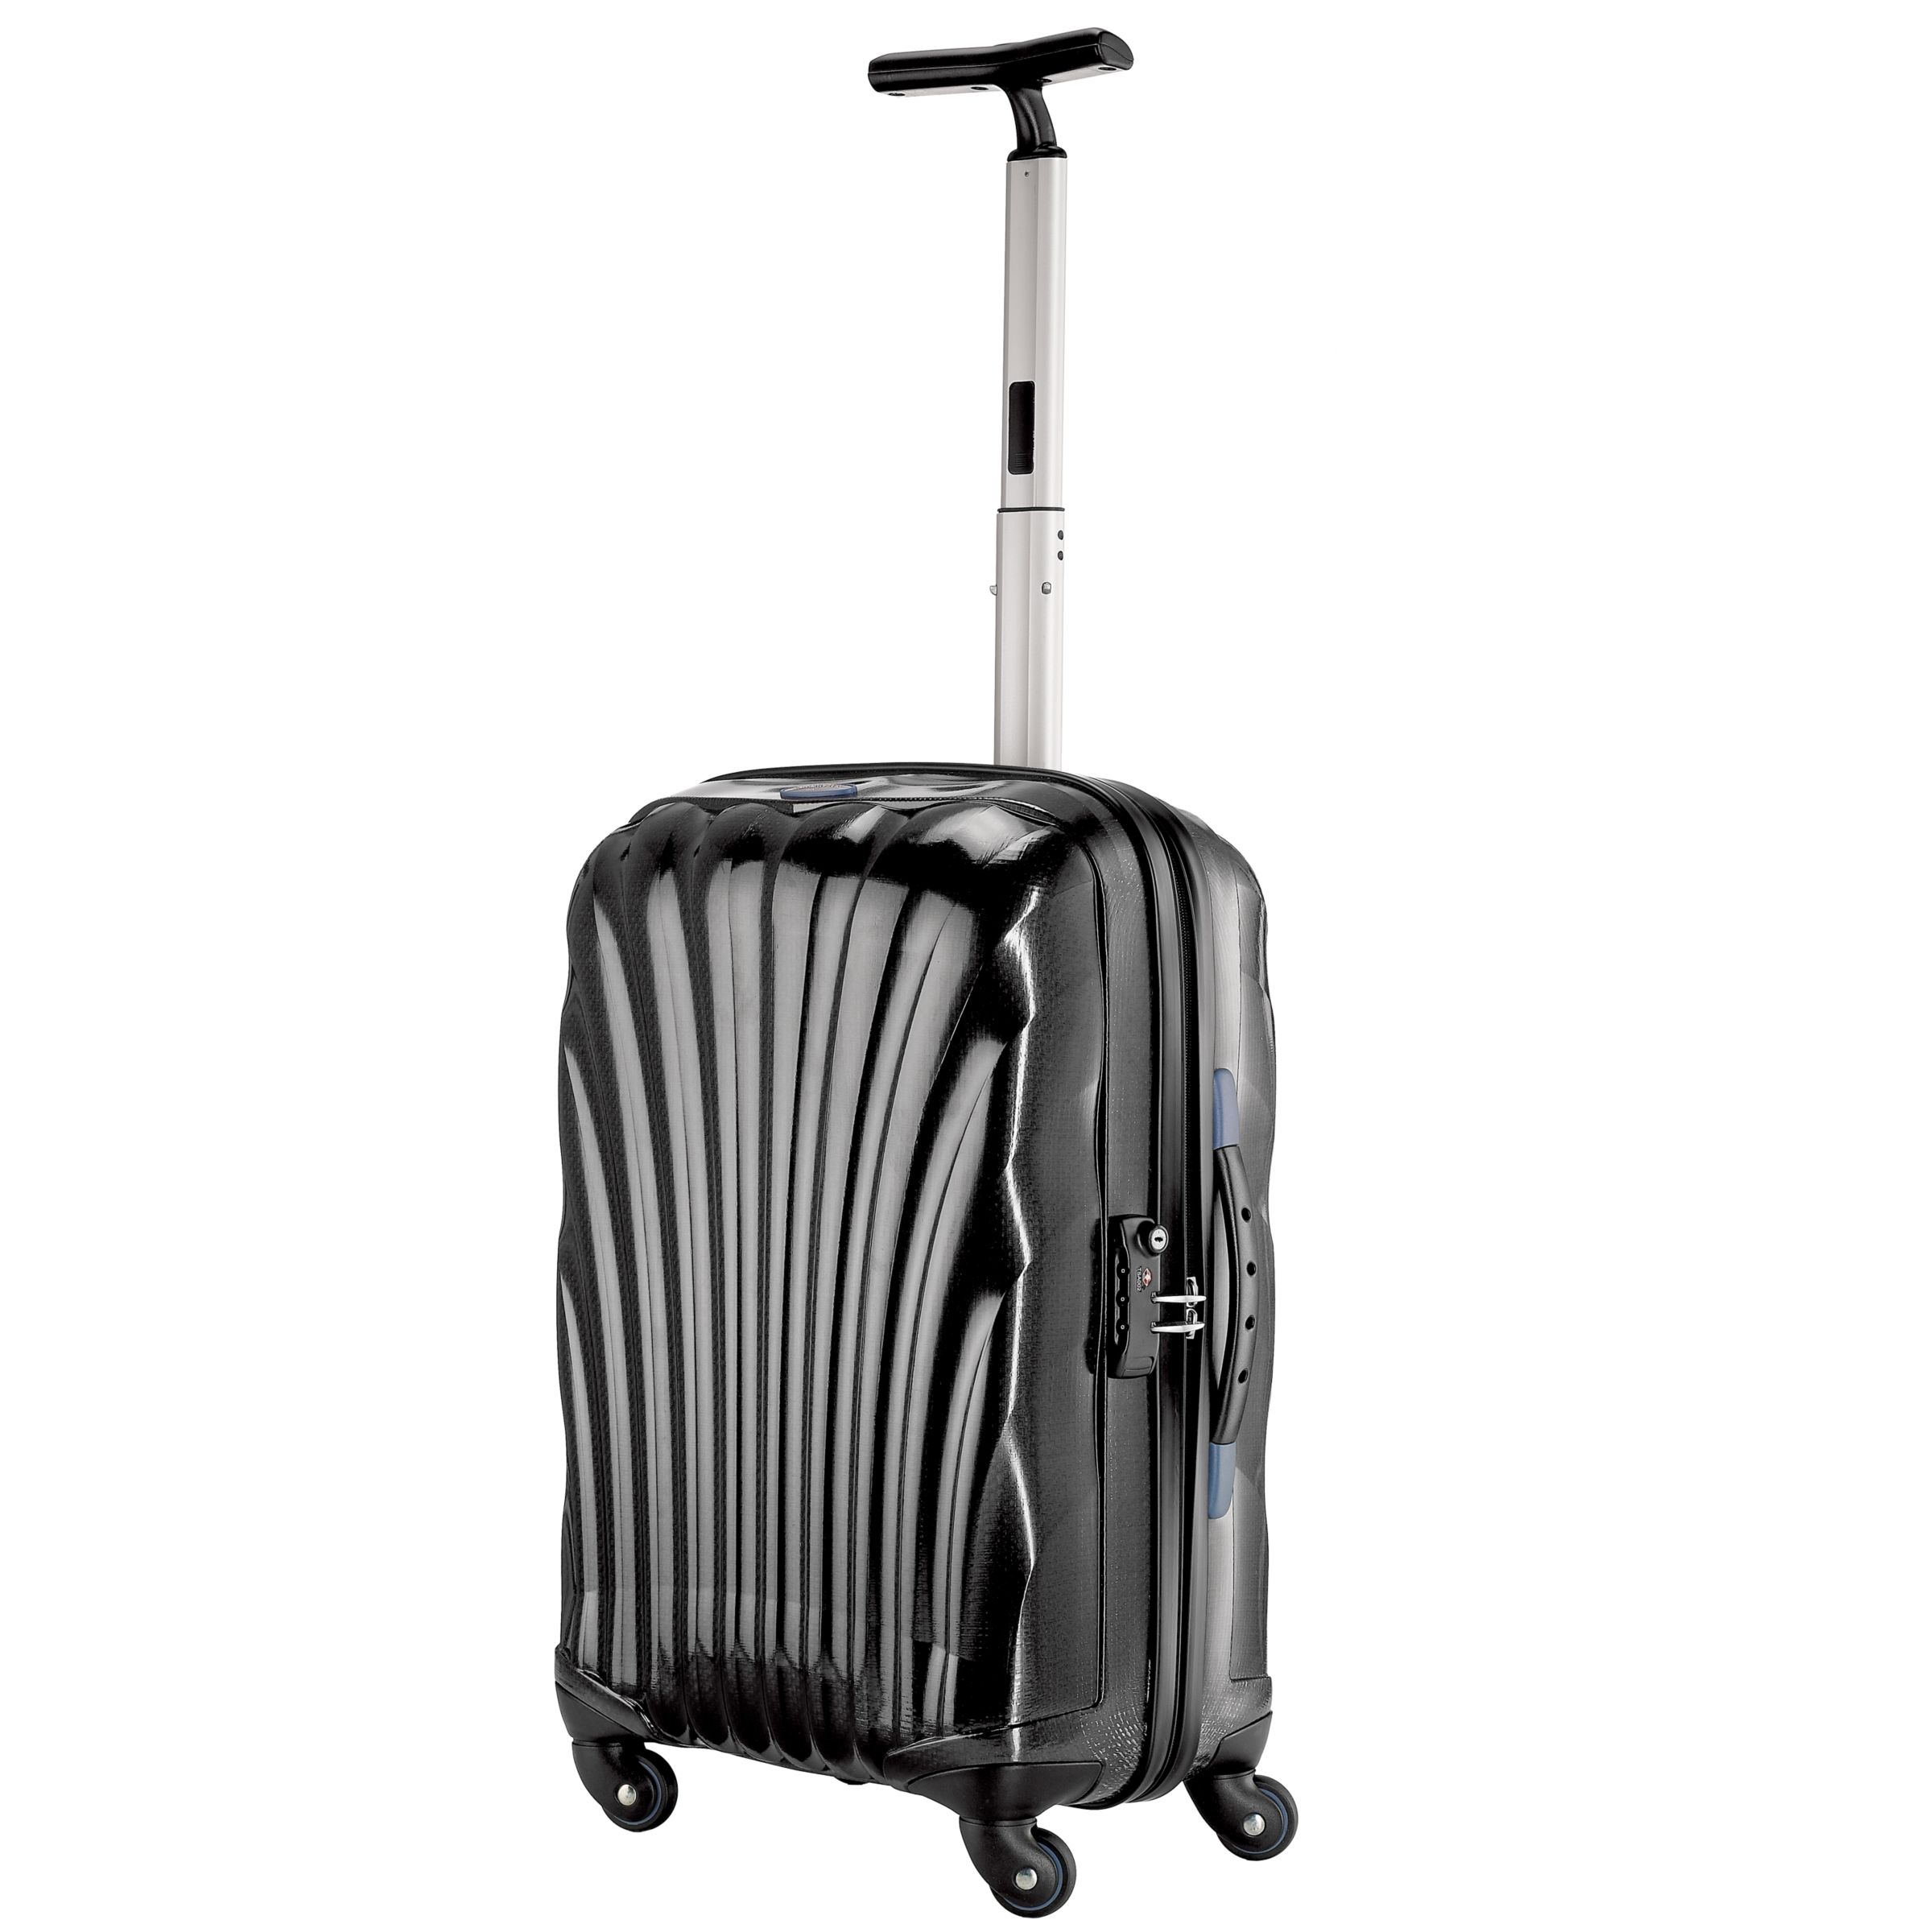 Samsonite Cosmolite Spinner 4-Wheel Suitcase, Black, Cabin